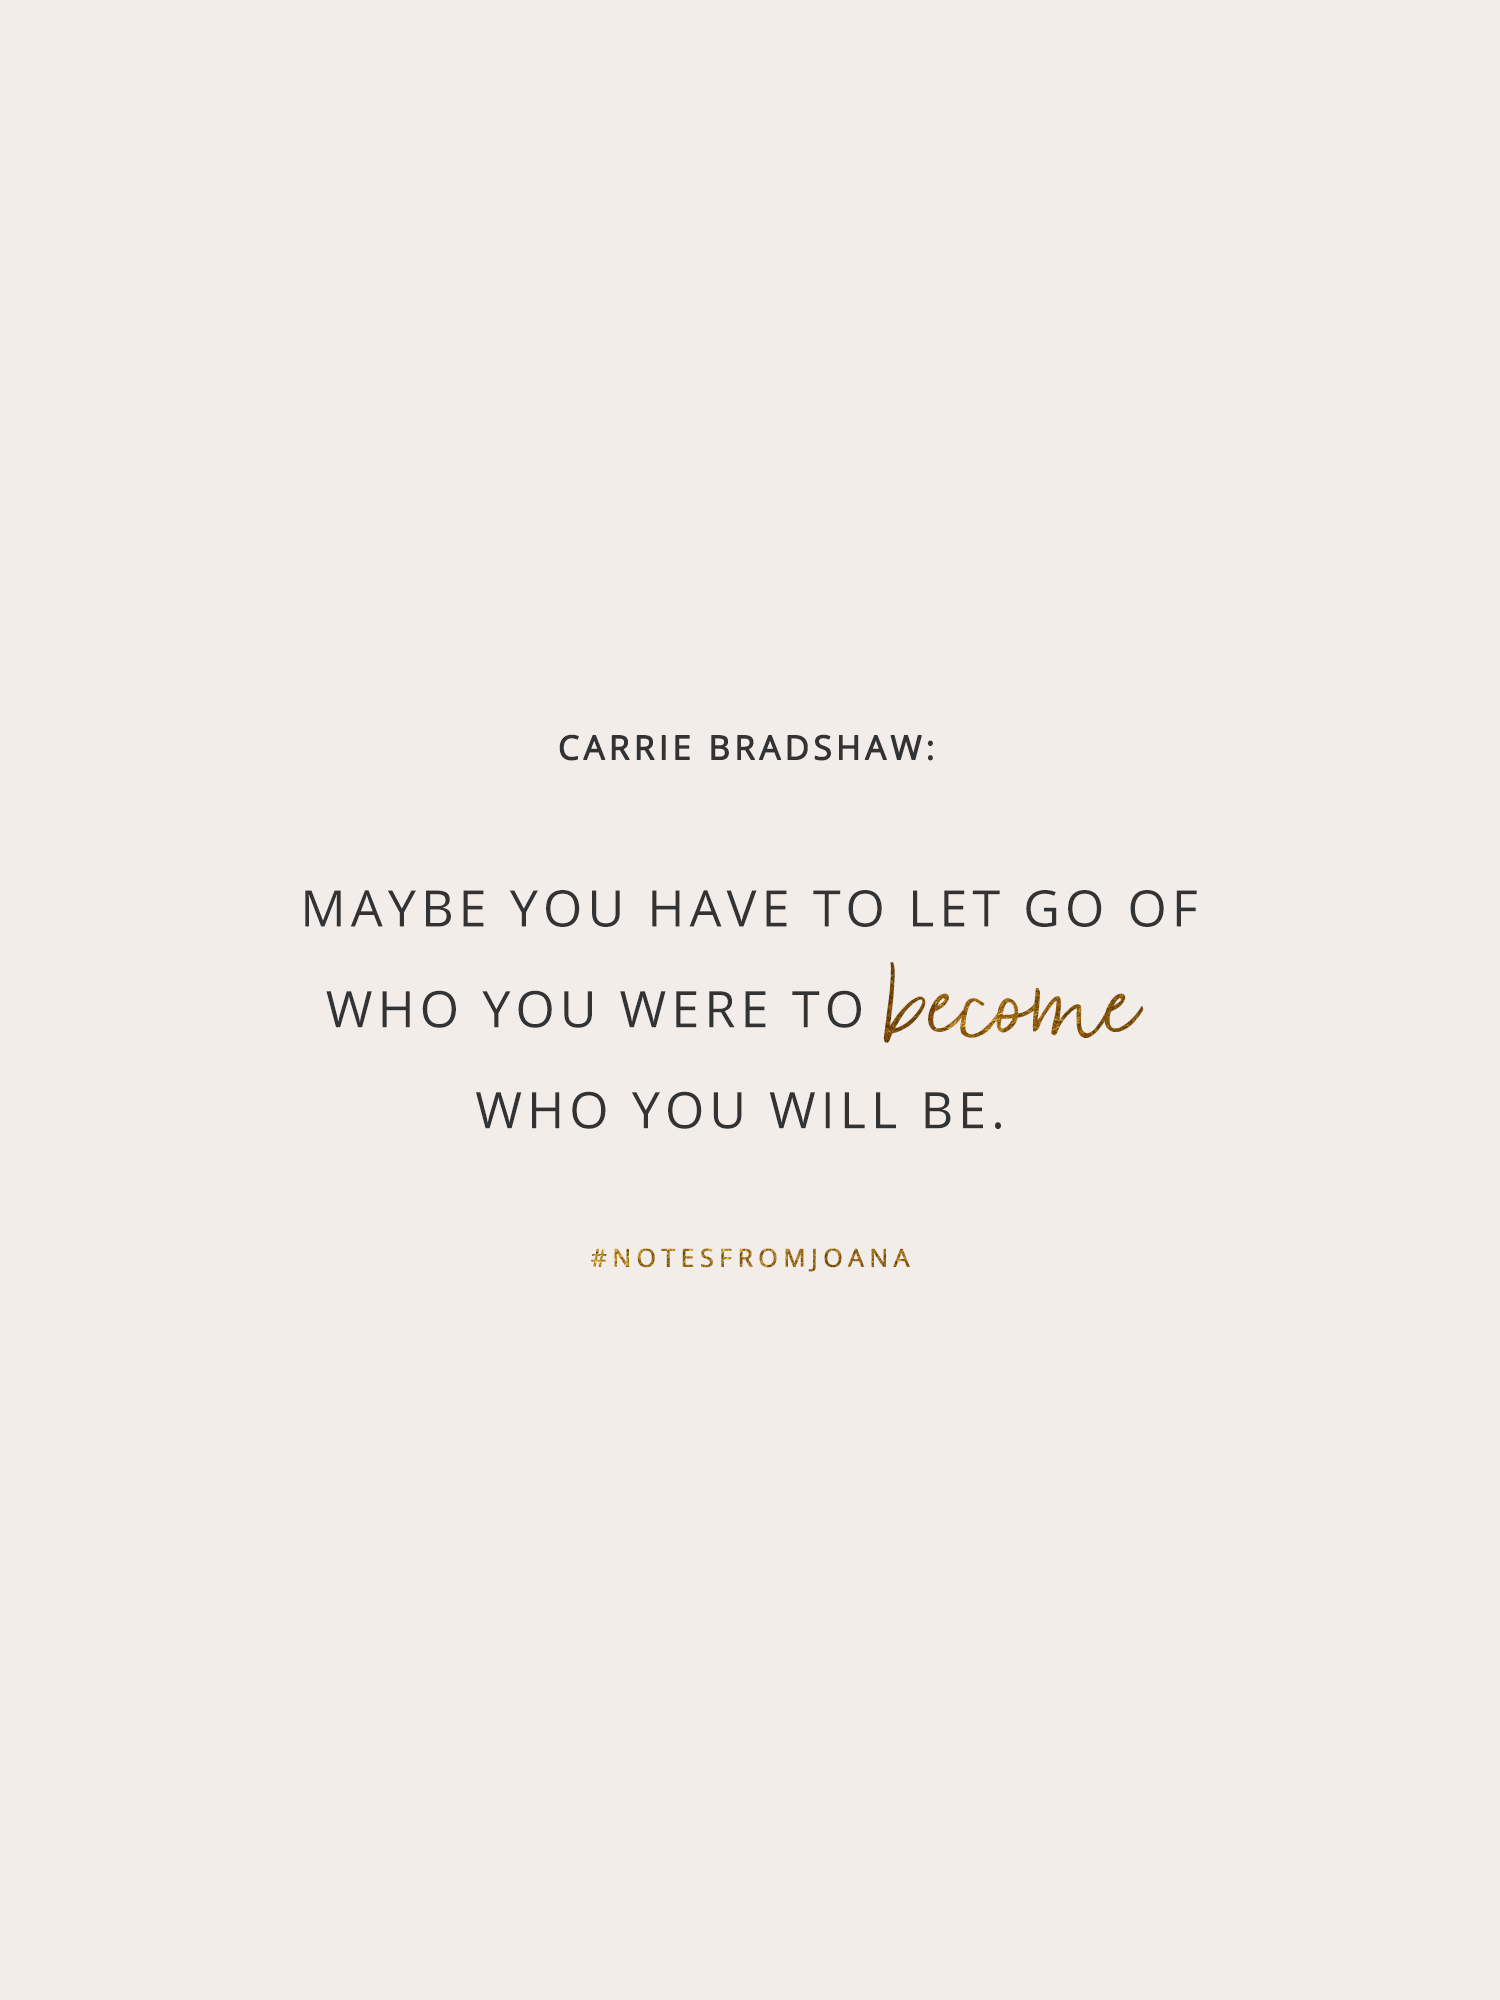 20 Inspirational Quotes To Help You Become Your Best Self. Maybe you have to let go of who you were to become who you will be. CARRIE BRADSHAW // Notes from Joana